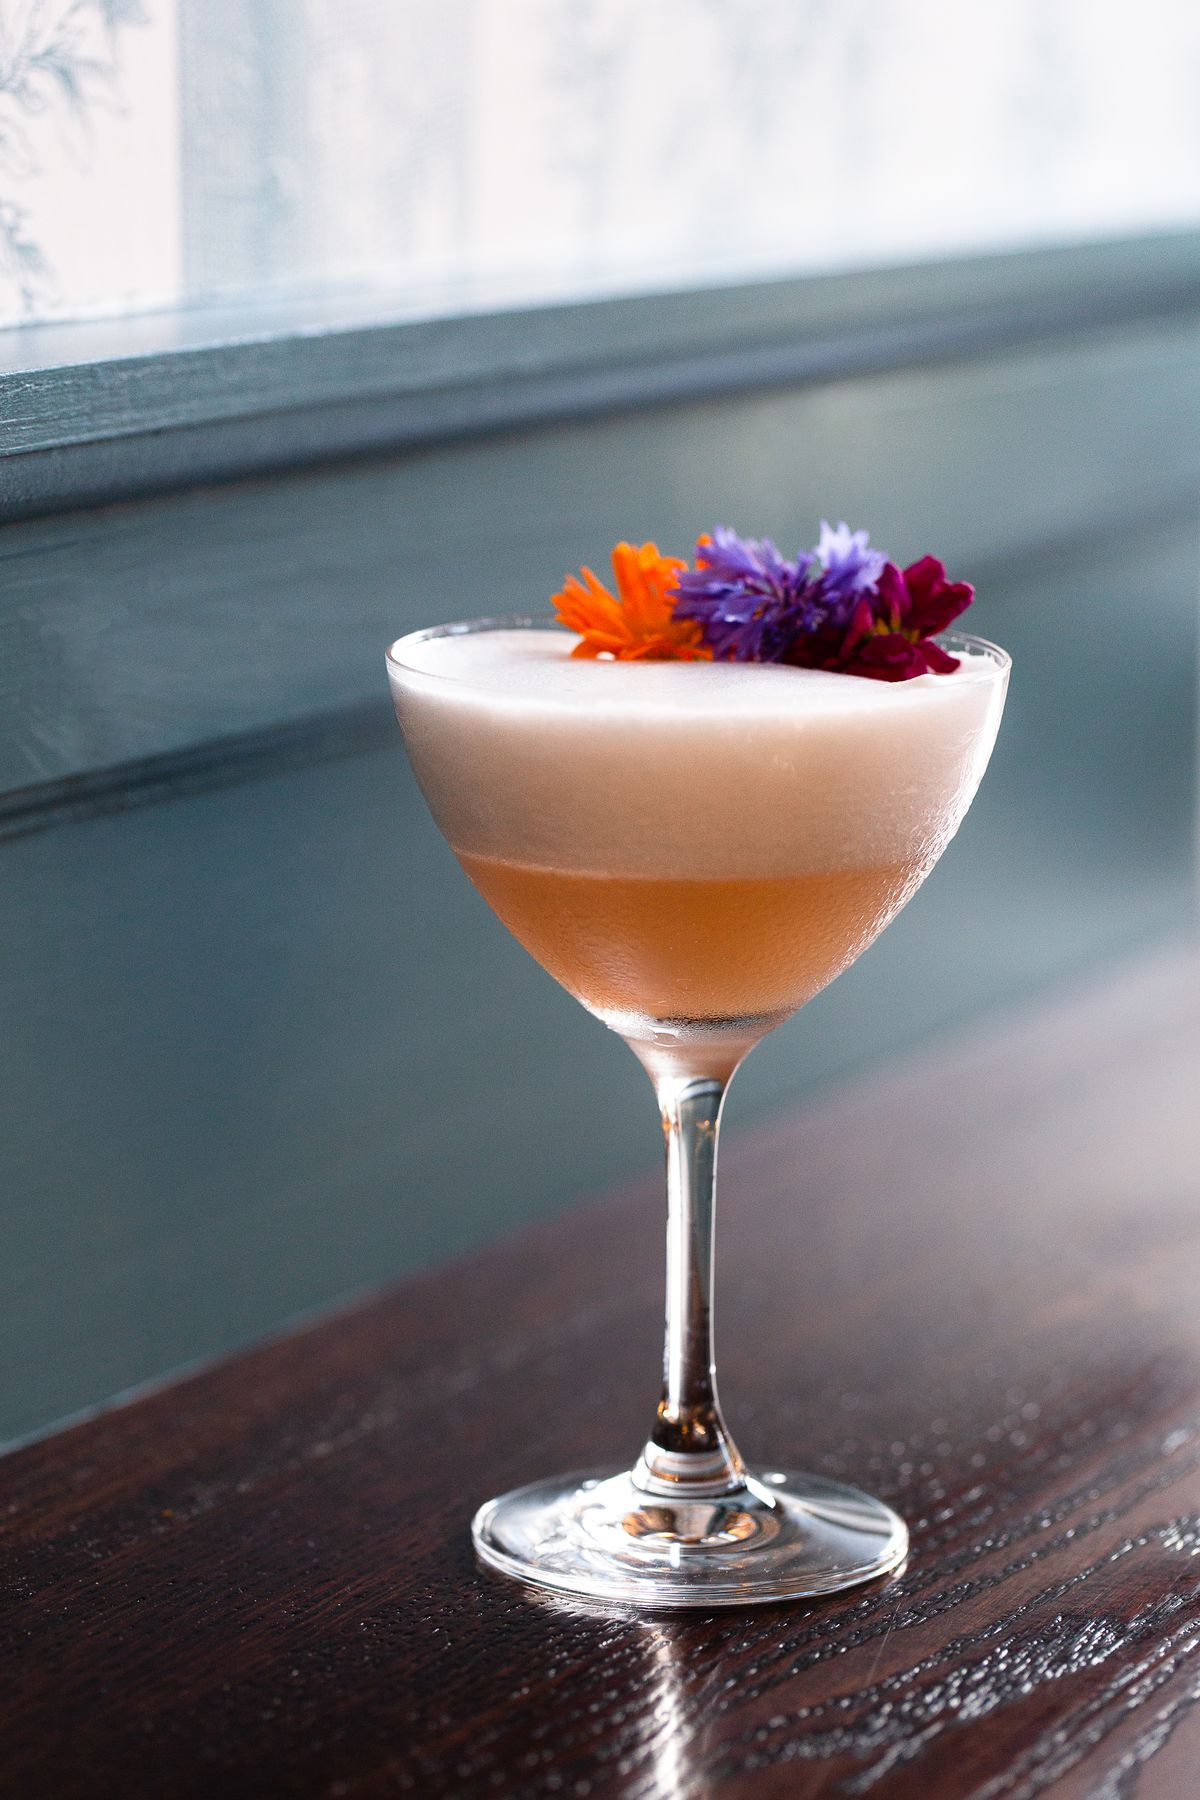 Closeup shot of a pink cocktail with a foamy top, garnished with pink and purple flowers